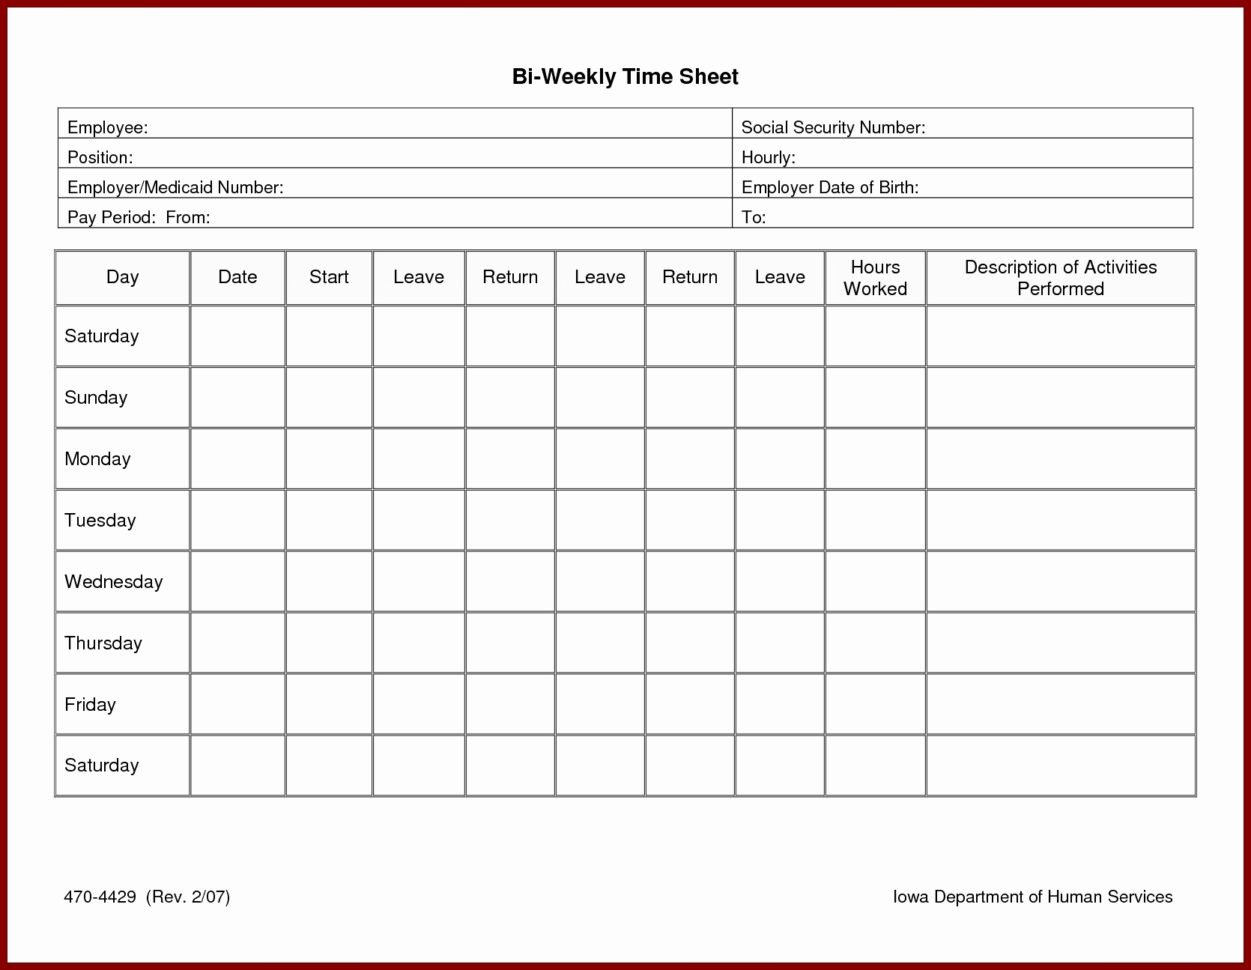 Comp Time Tracking Spreadsheet Download Intended For Sheet Employee Training Tracker Excel New Vacation Time Tracking